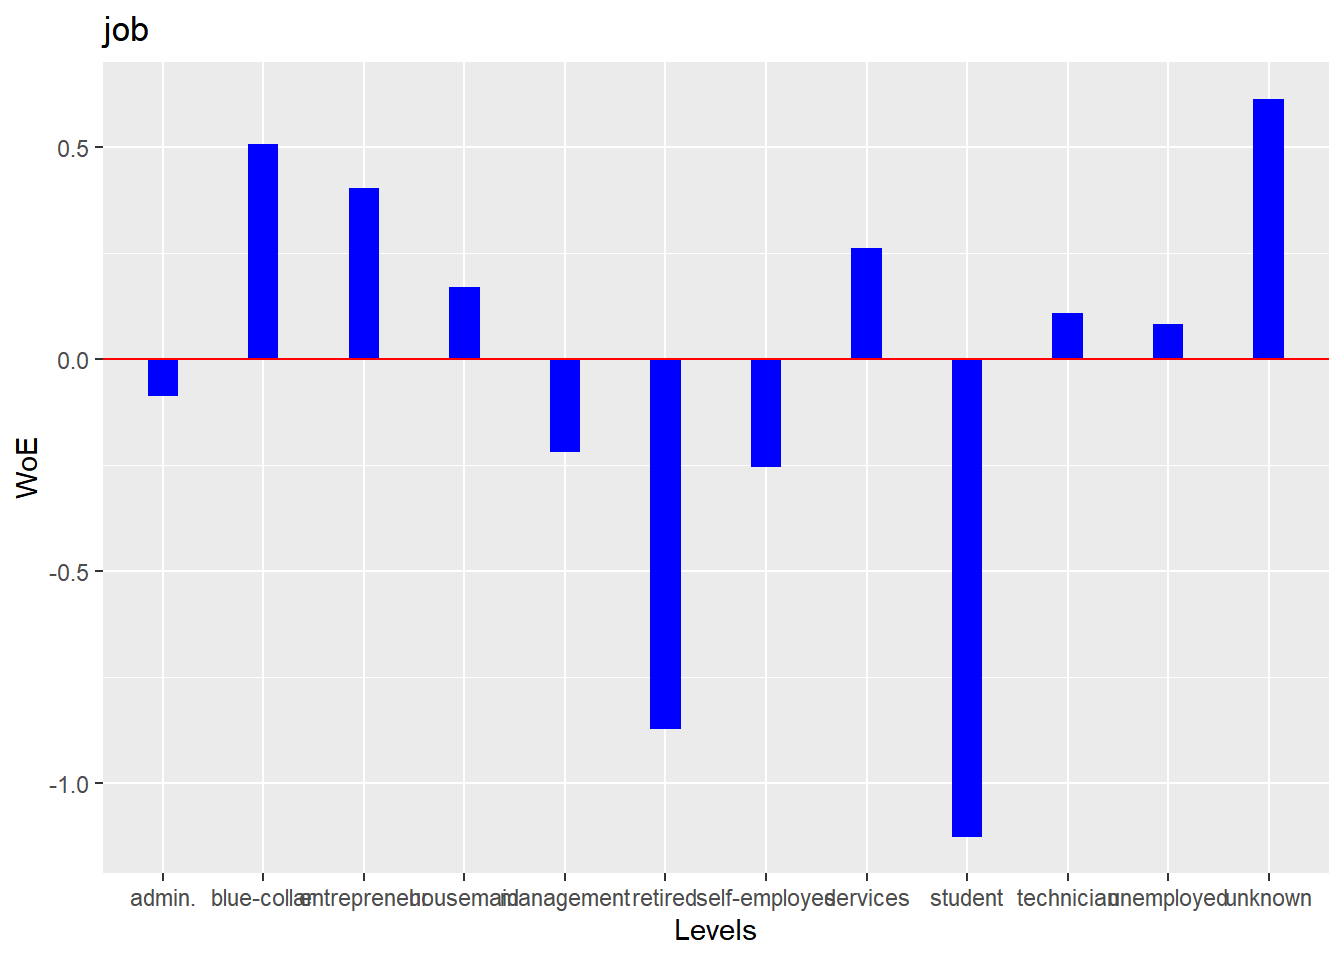 Logistic regression in R using blorr package